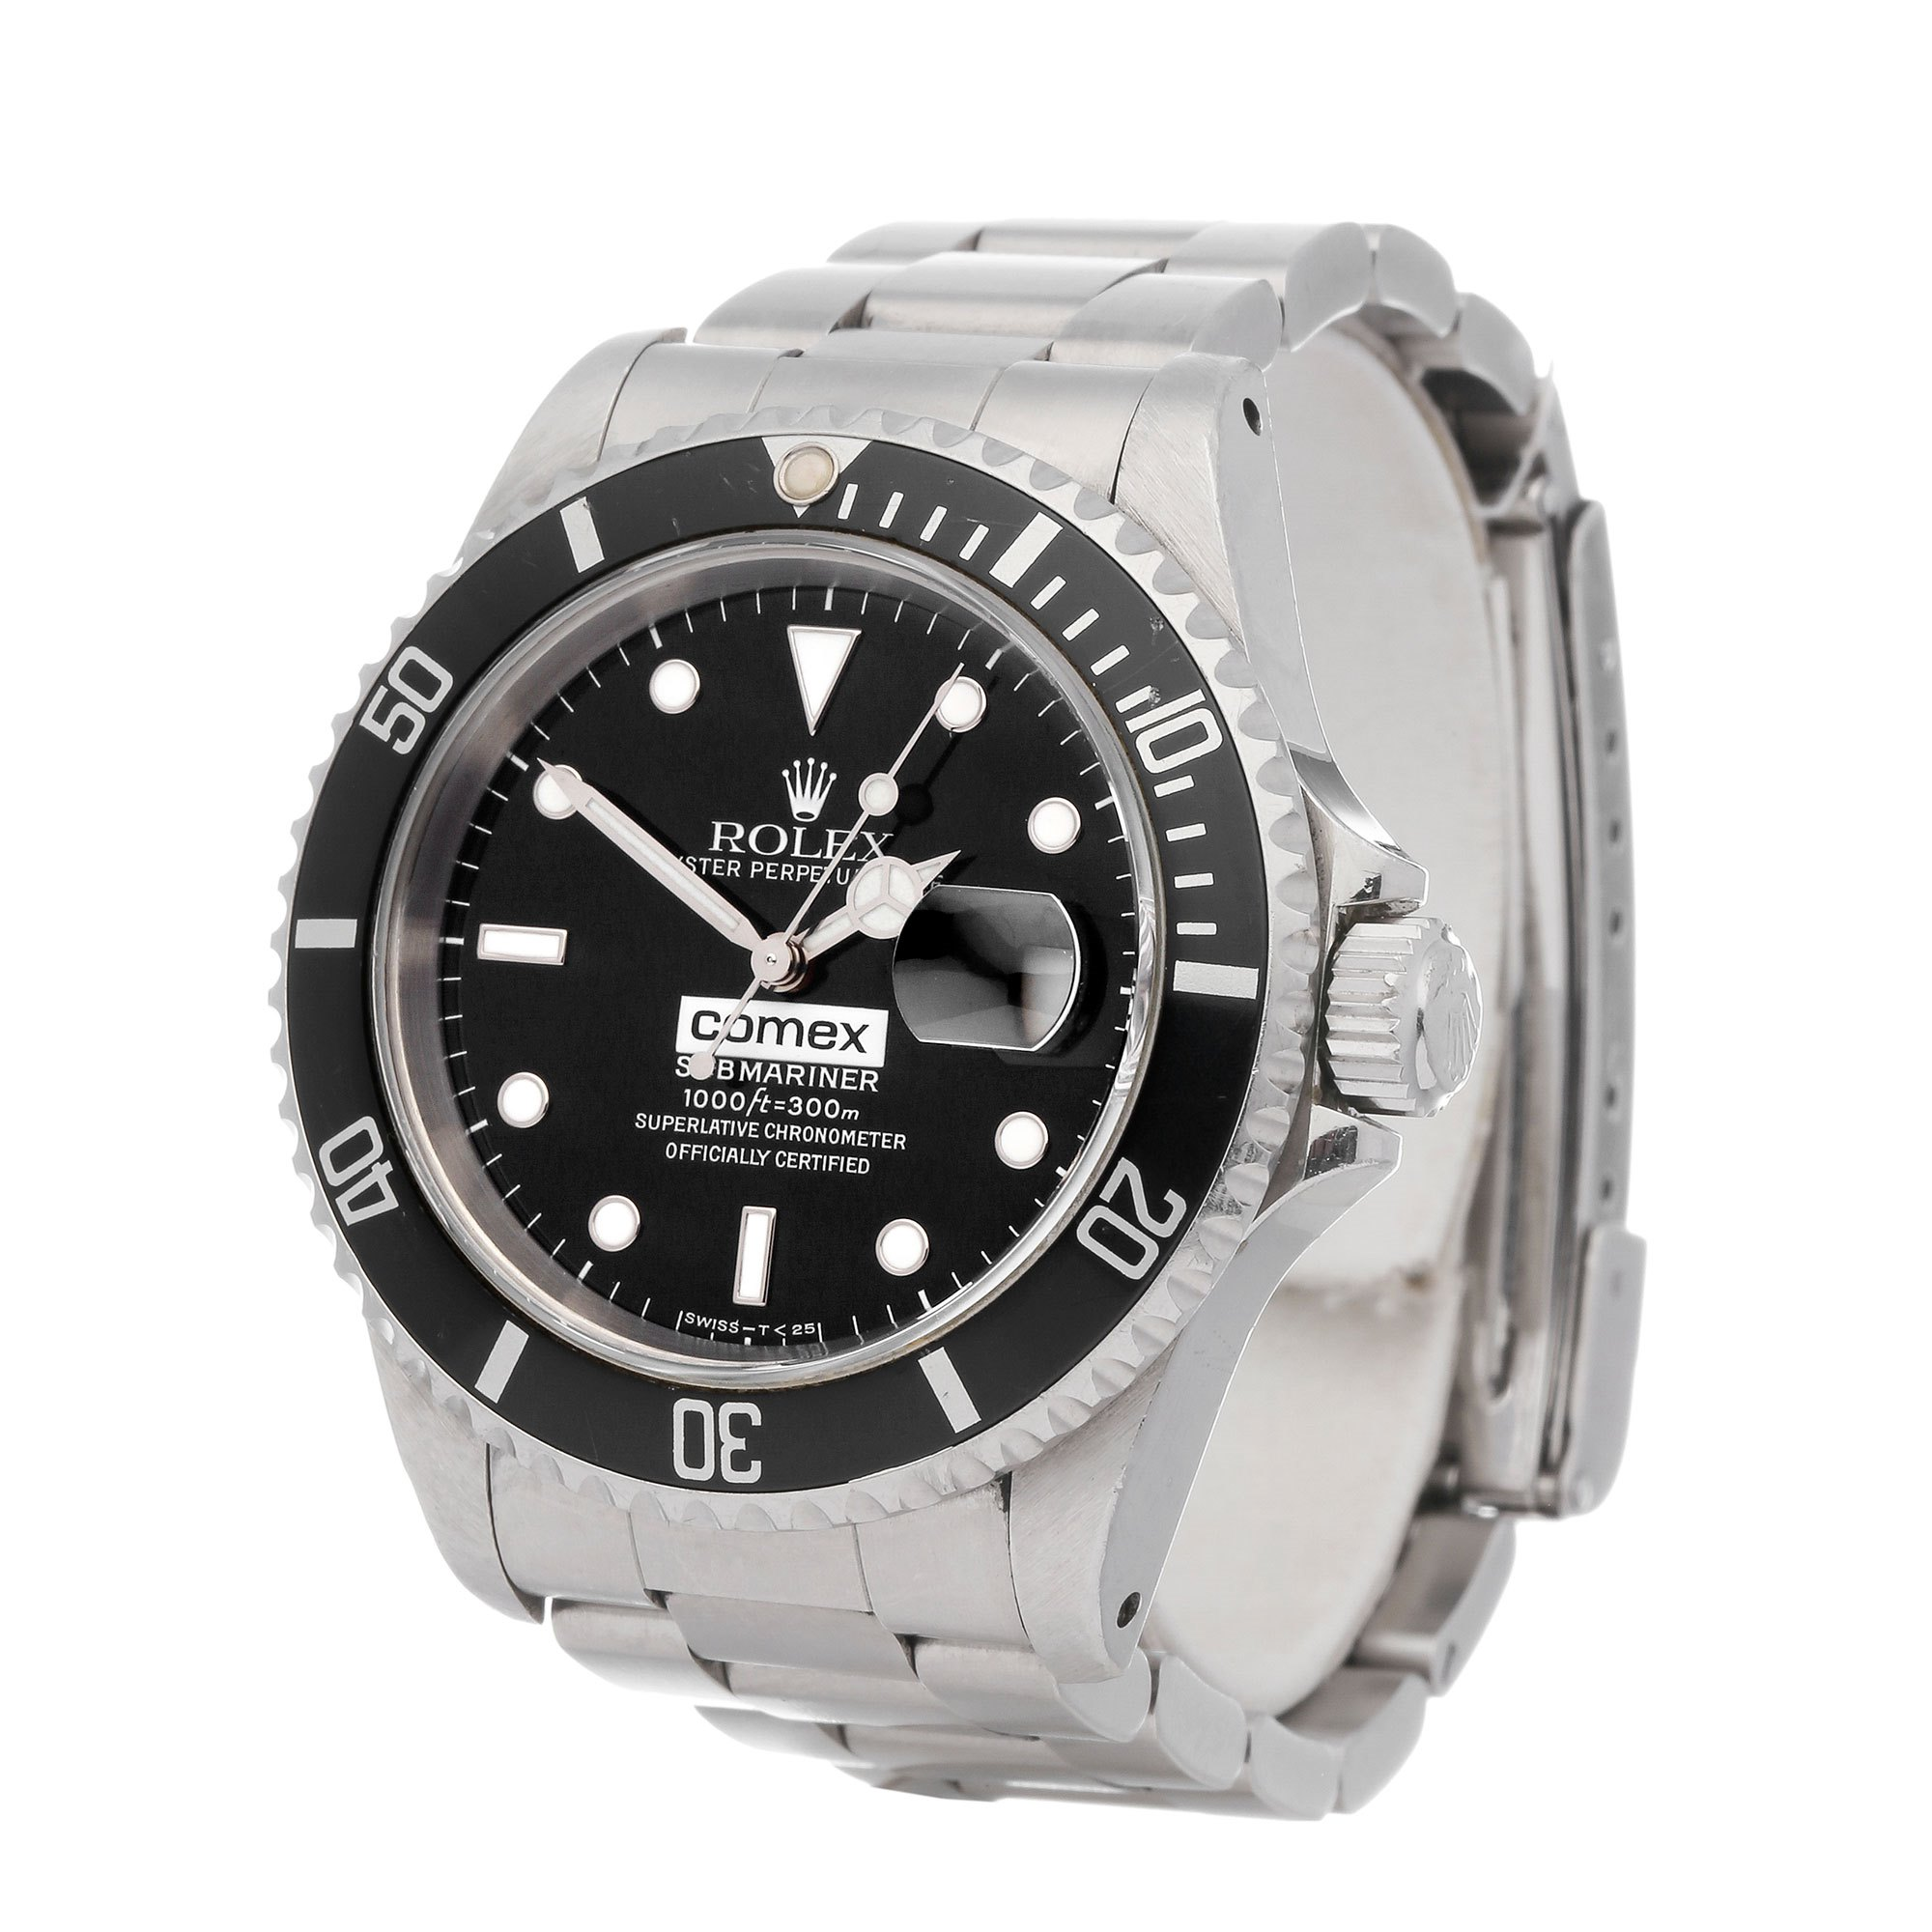 Rolex Submariner 'Comex' Stainless Steel - 16610 Stainless Steel 16610